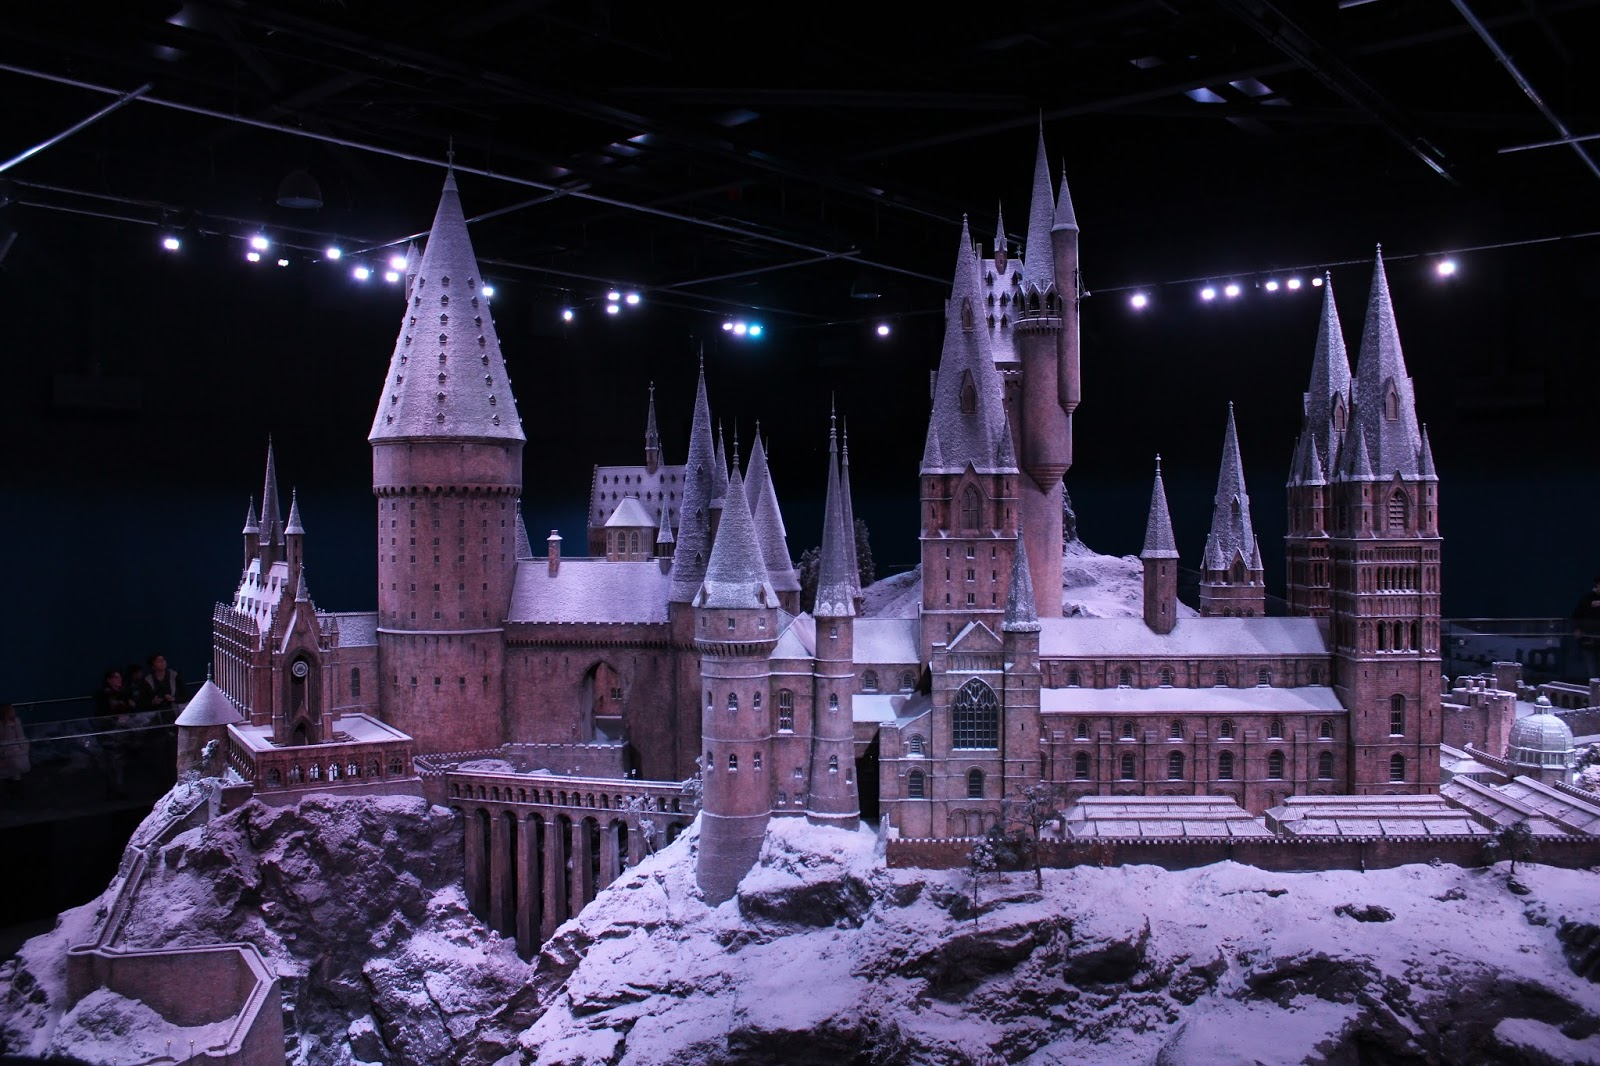 Harry Potter studio tour london Hogwarts model